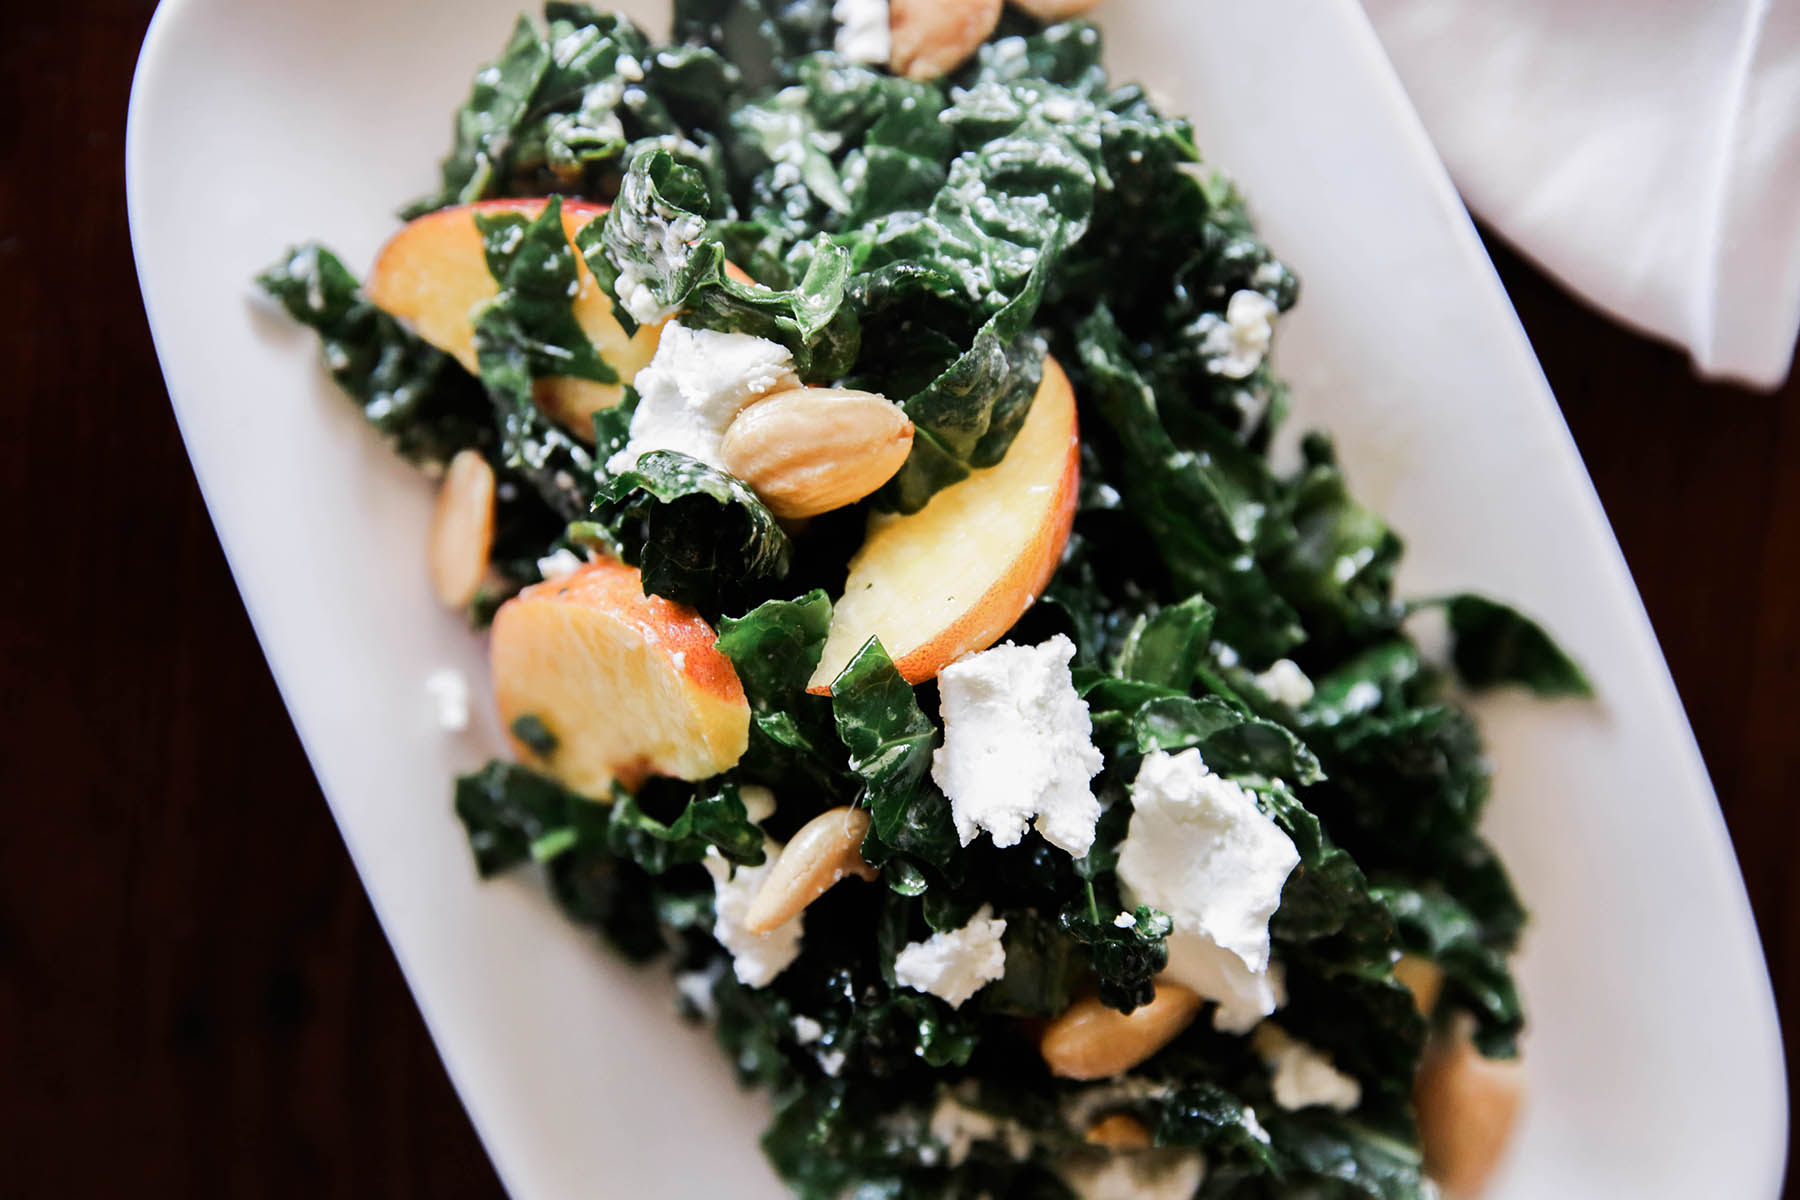 kale and stone fruit salad at Guerneville restaurants boon eat + drink